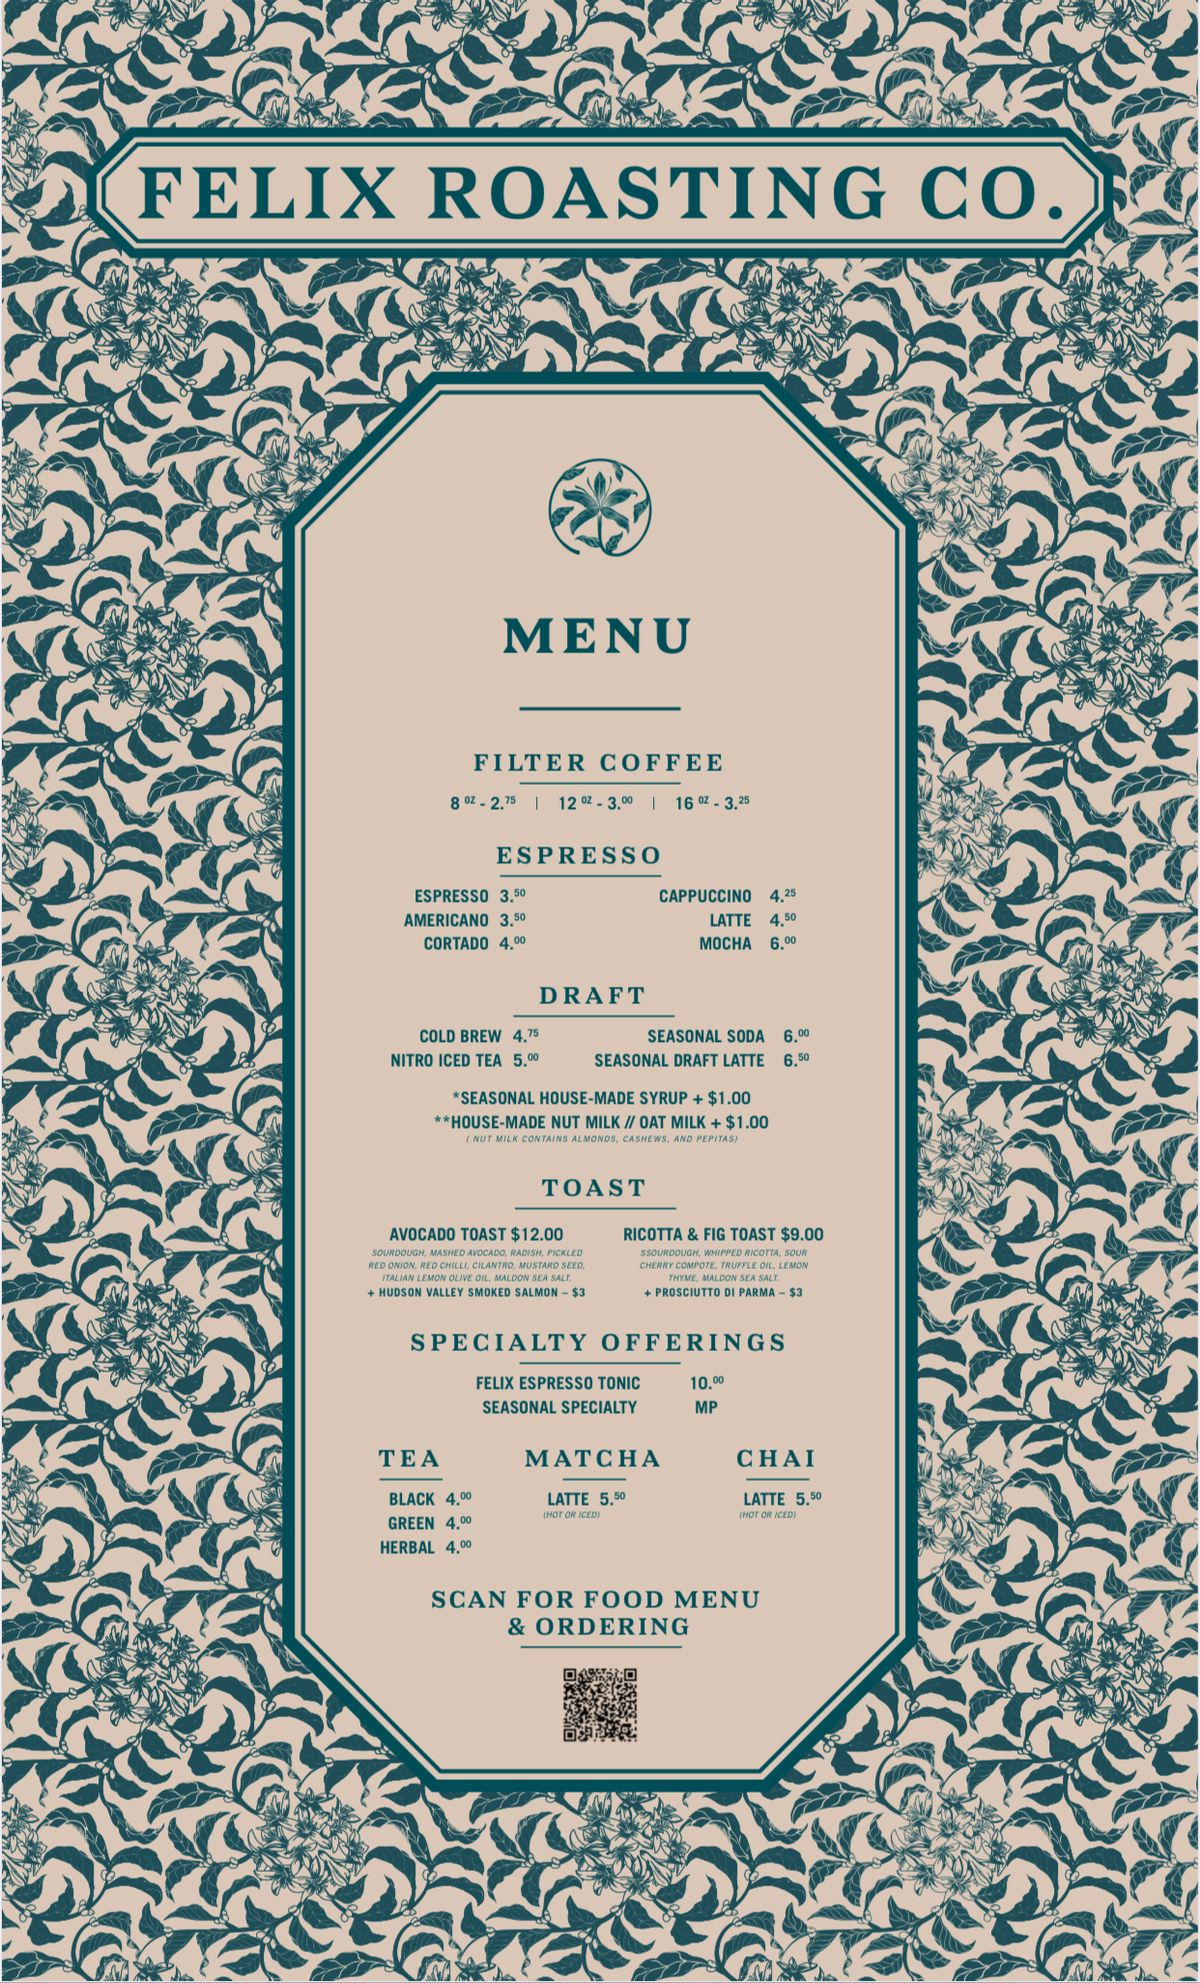 A detailed menu of a coffee shop with several drinks and small bites listed